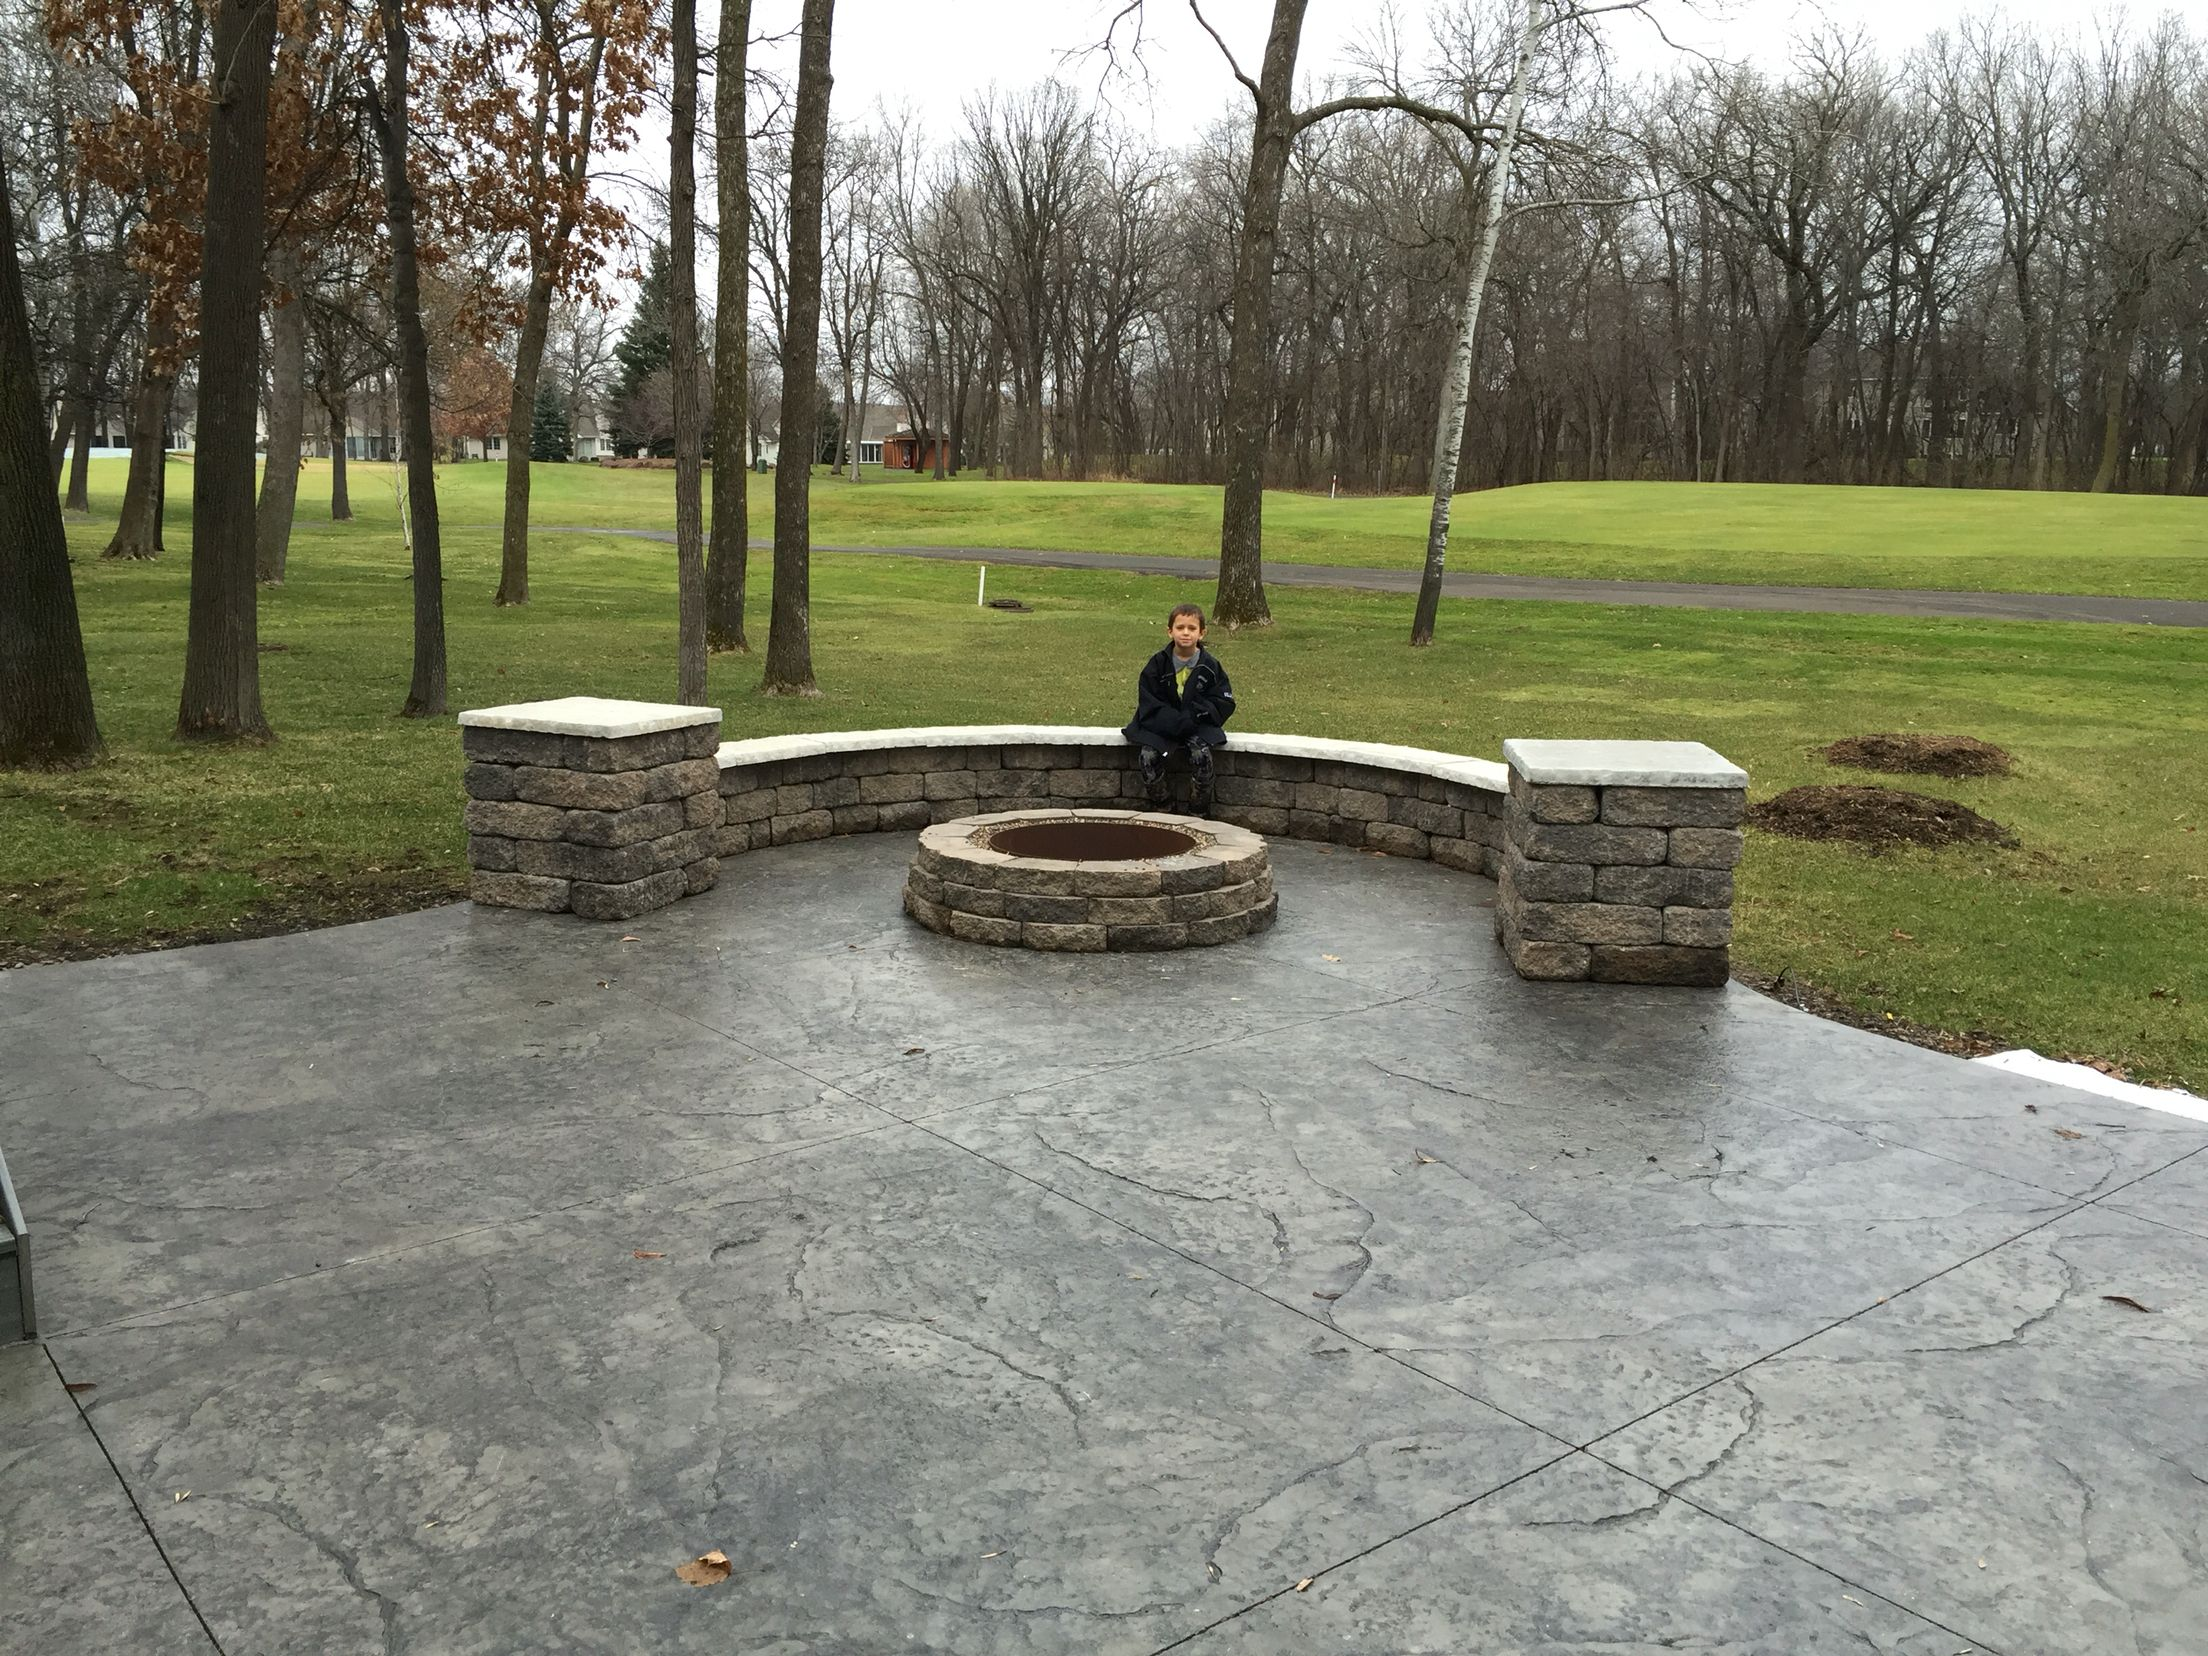 Stamped Concrete Patio With Integrated Seating Wall Pillars And Matching Fire Pit By Sierra Concrete Arts Stamped Concrete Patio Concrete Patio Patio